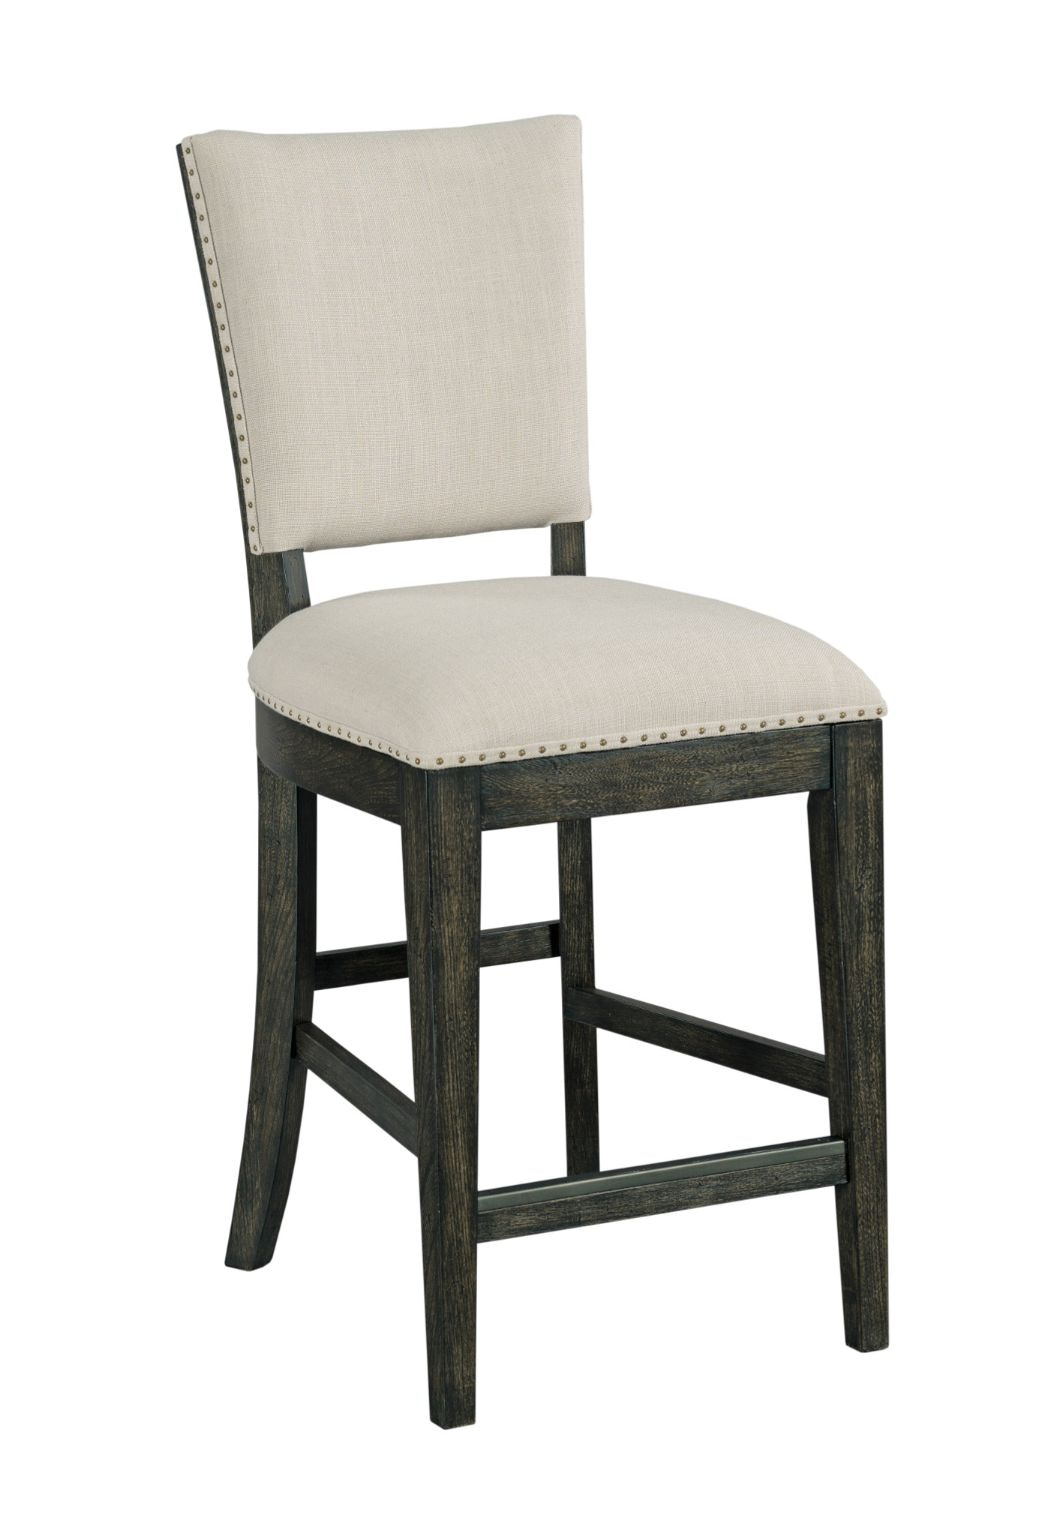 706 691C. Kimler Counter Height Chair